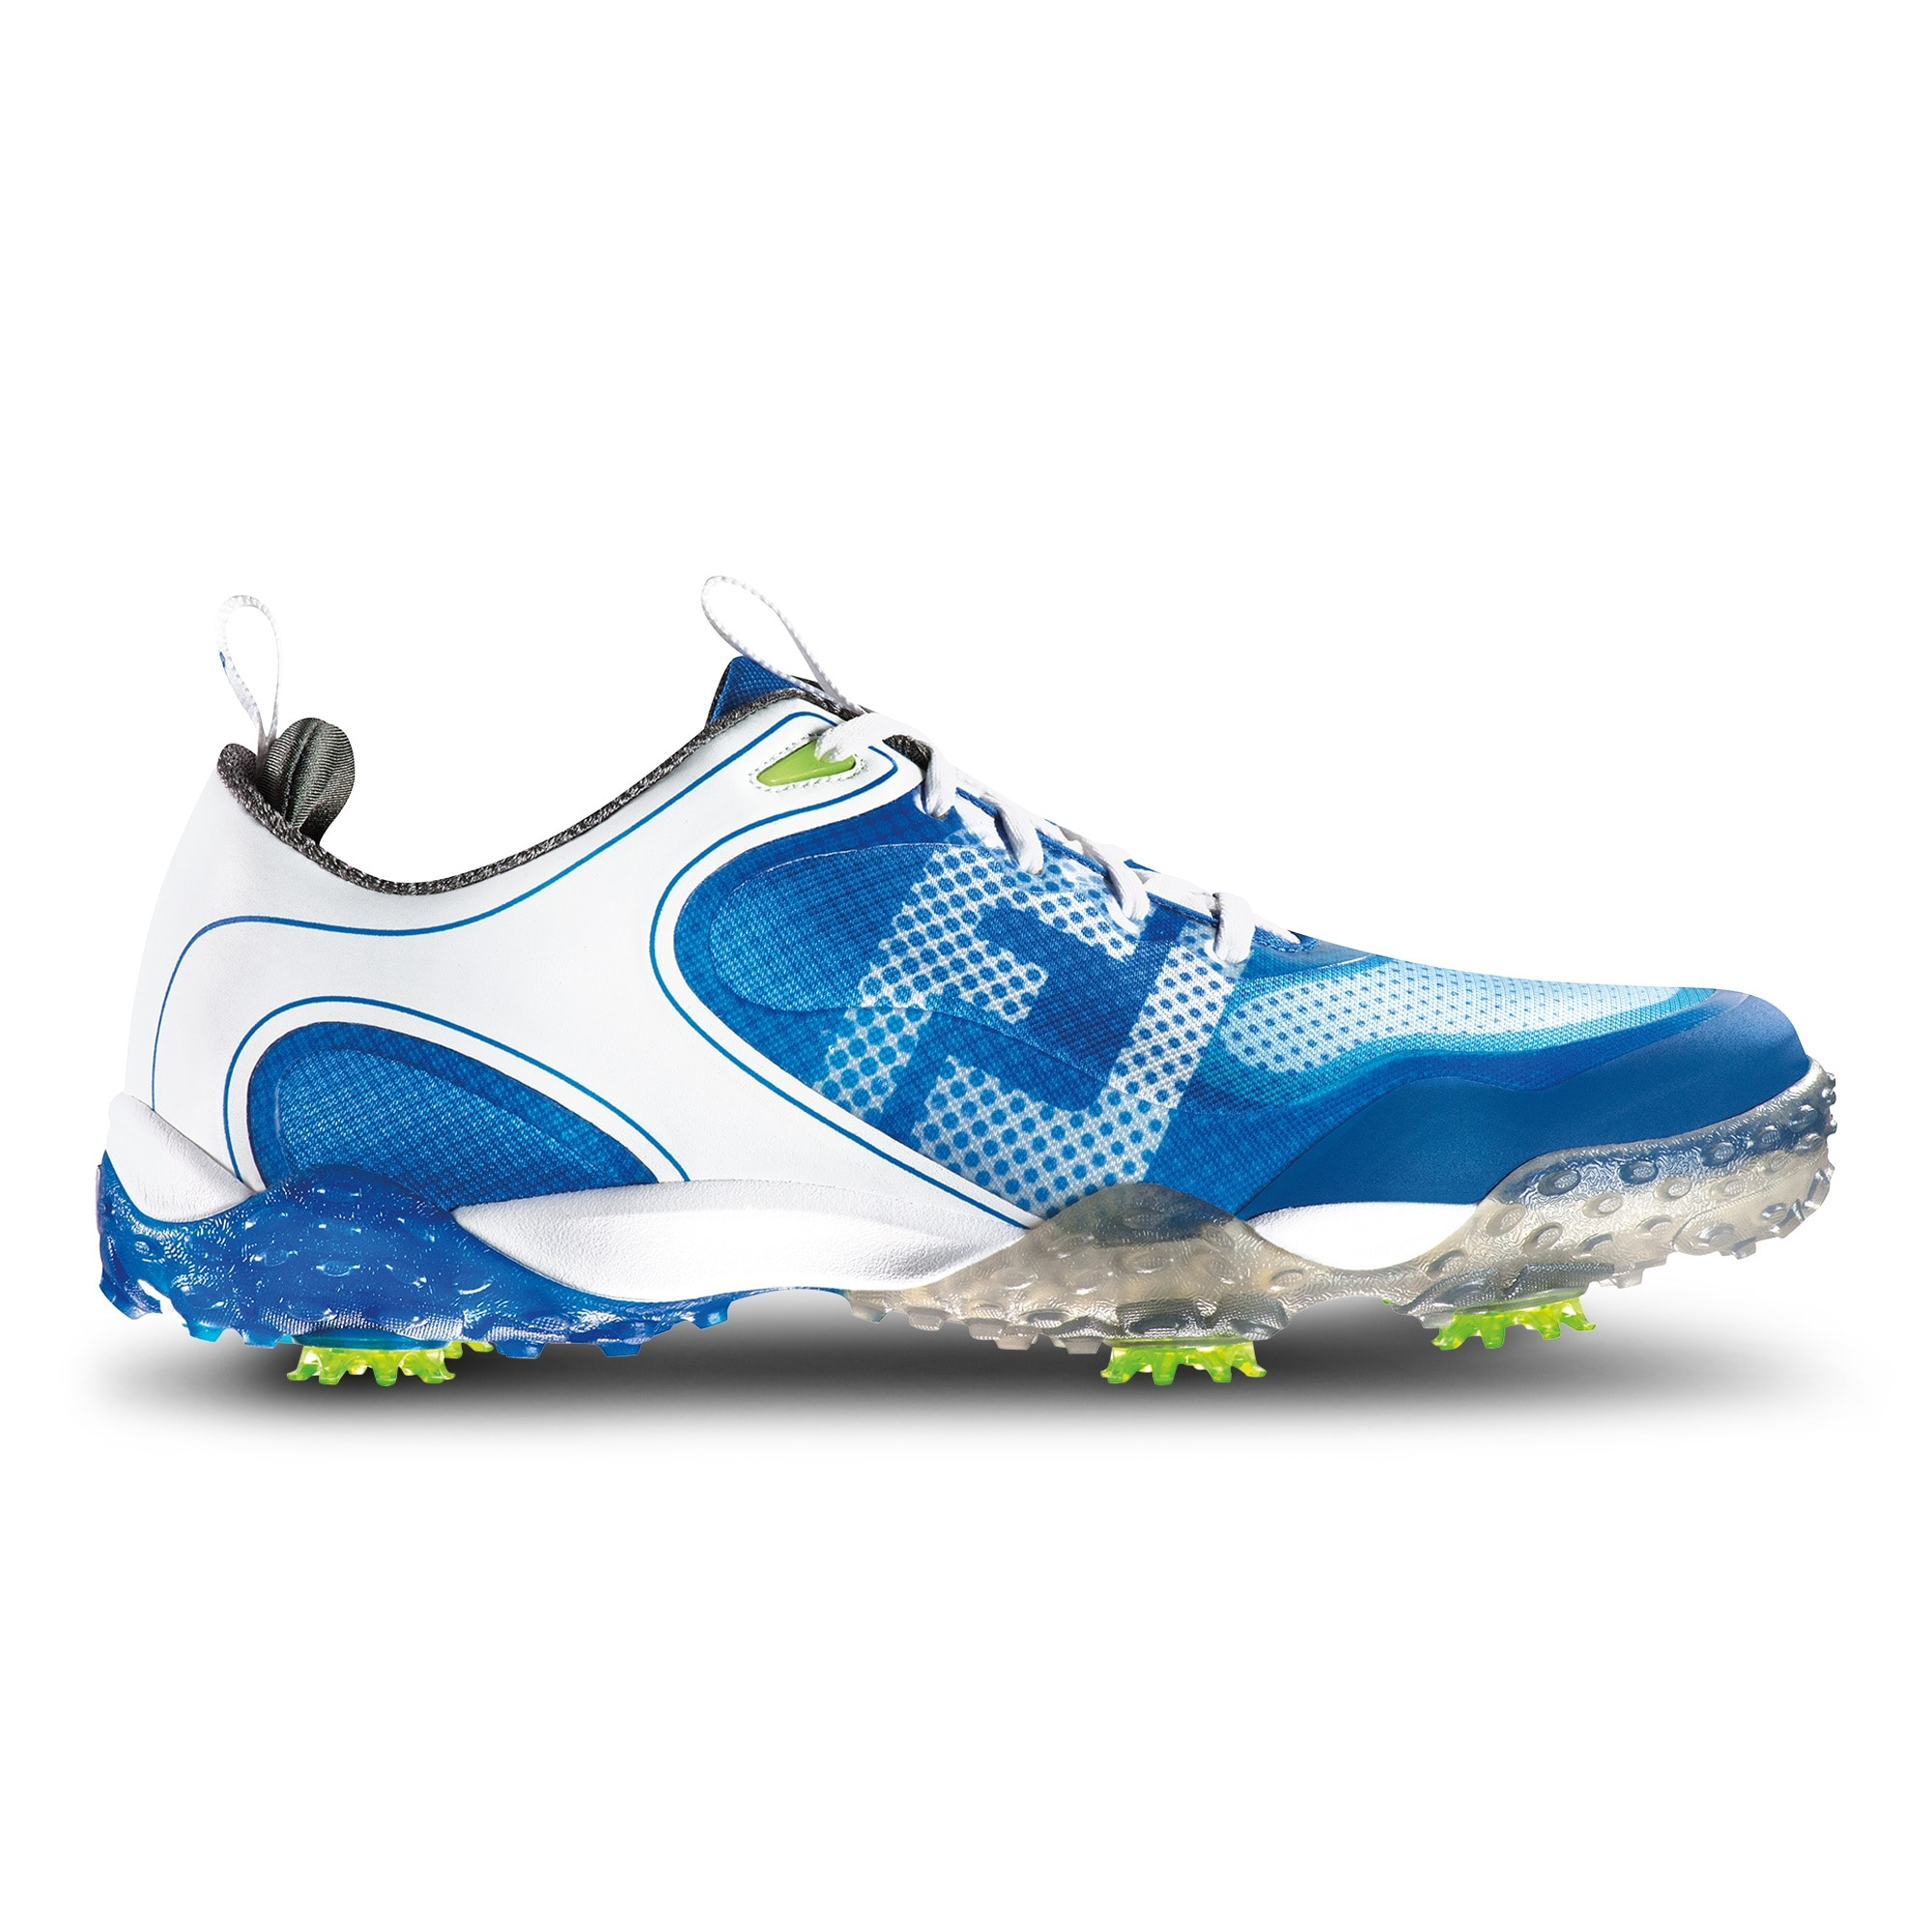 FreeStyle Golf Shoes - Mesh Golf Shoes